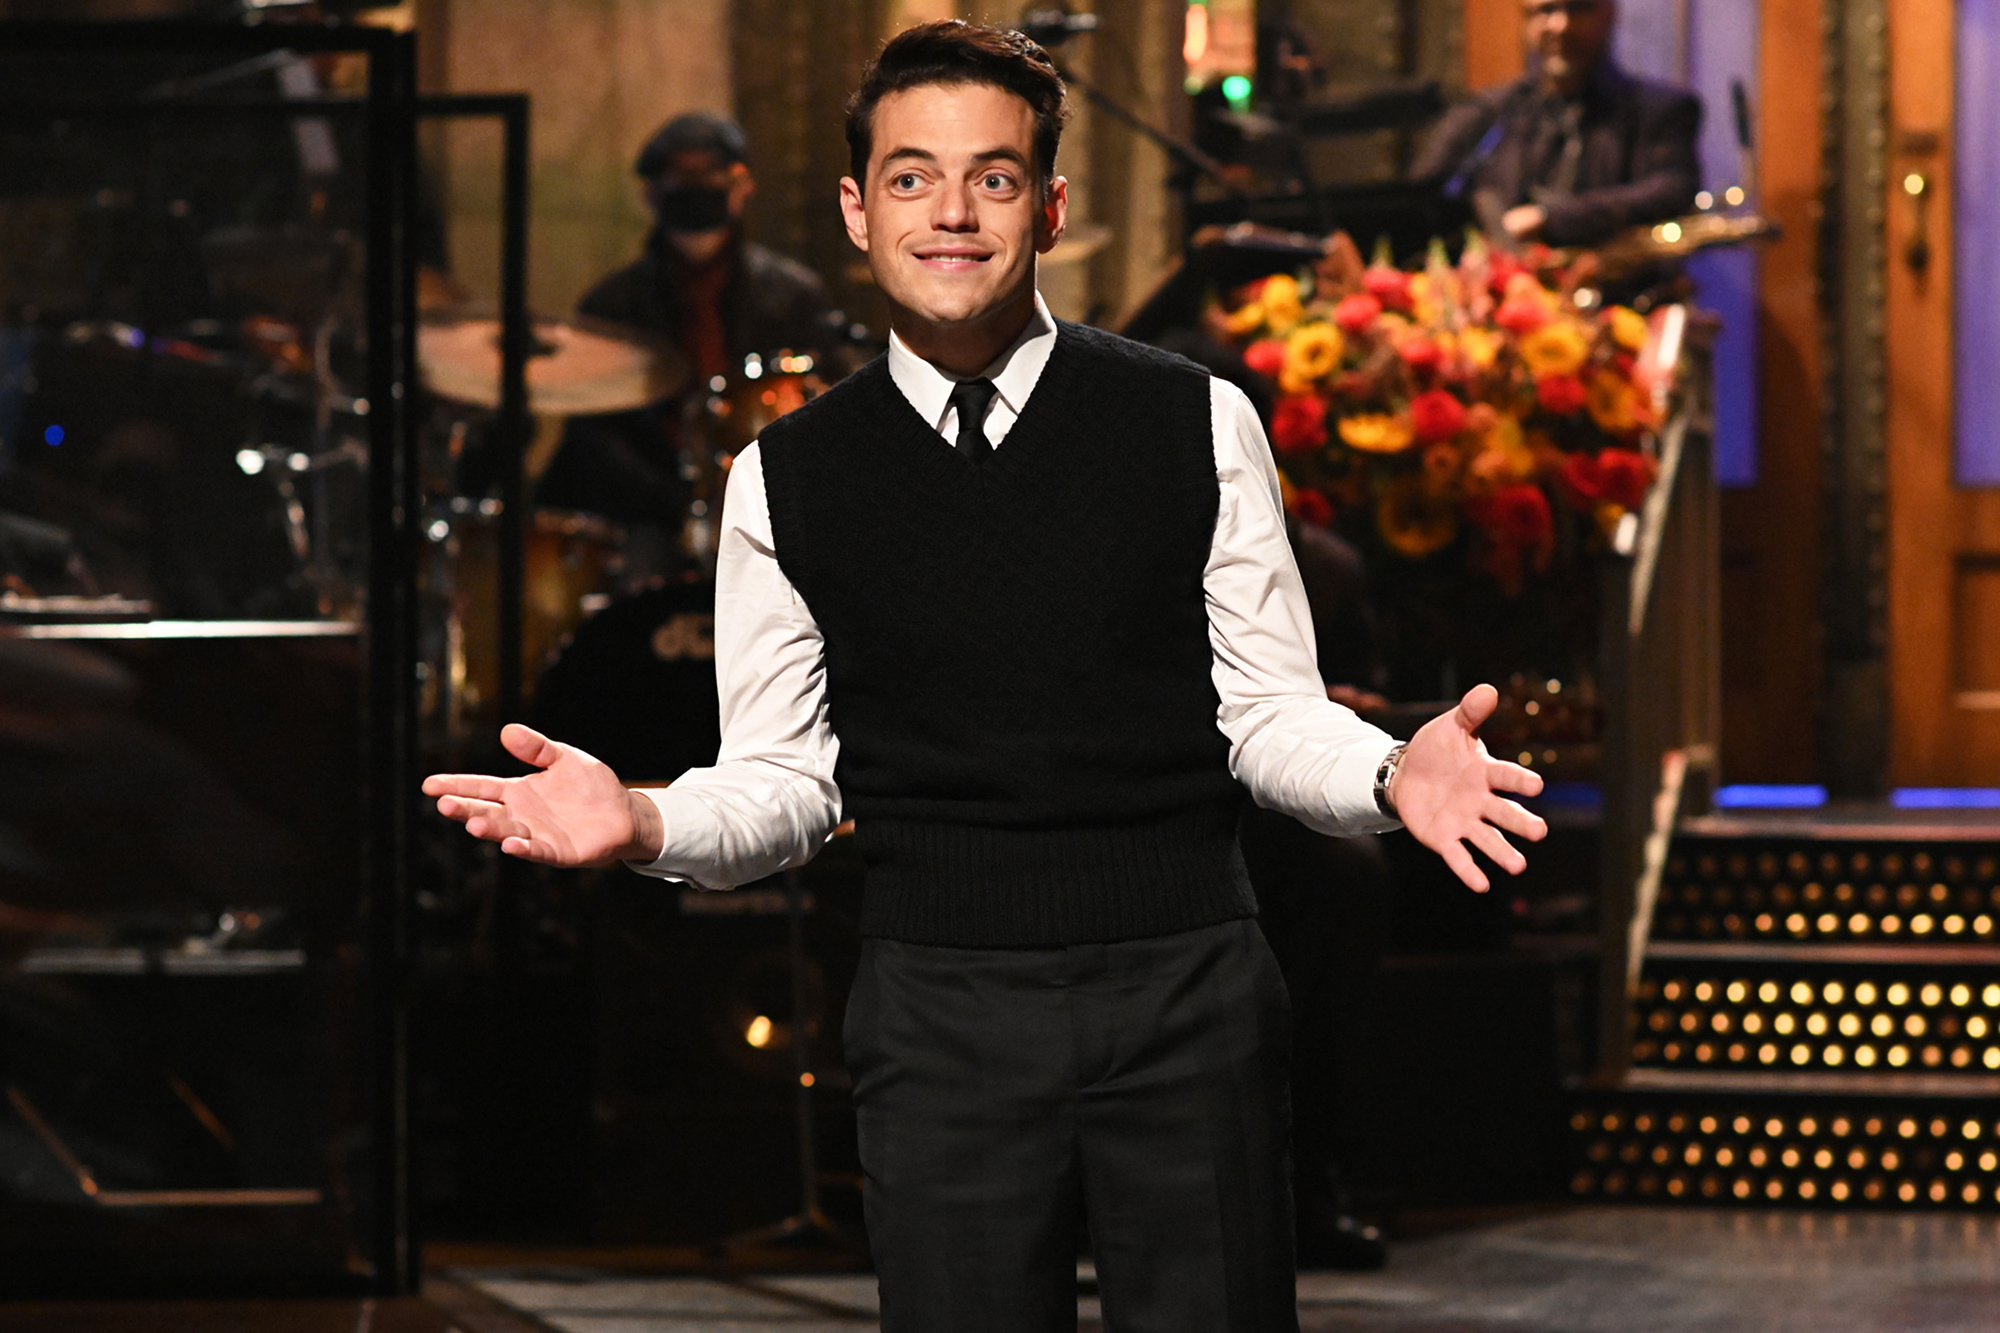 SATURDAY NIGHT LIVE Rami Malek Episode 1808 Pictured: Host Rami Malek during the monologue on Saturday, October 16, 2021.